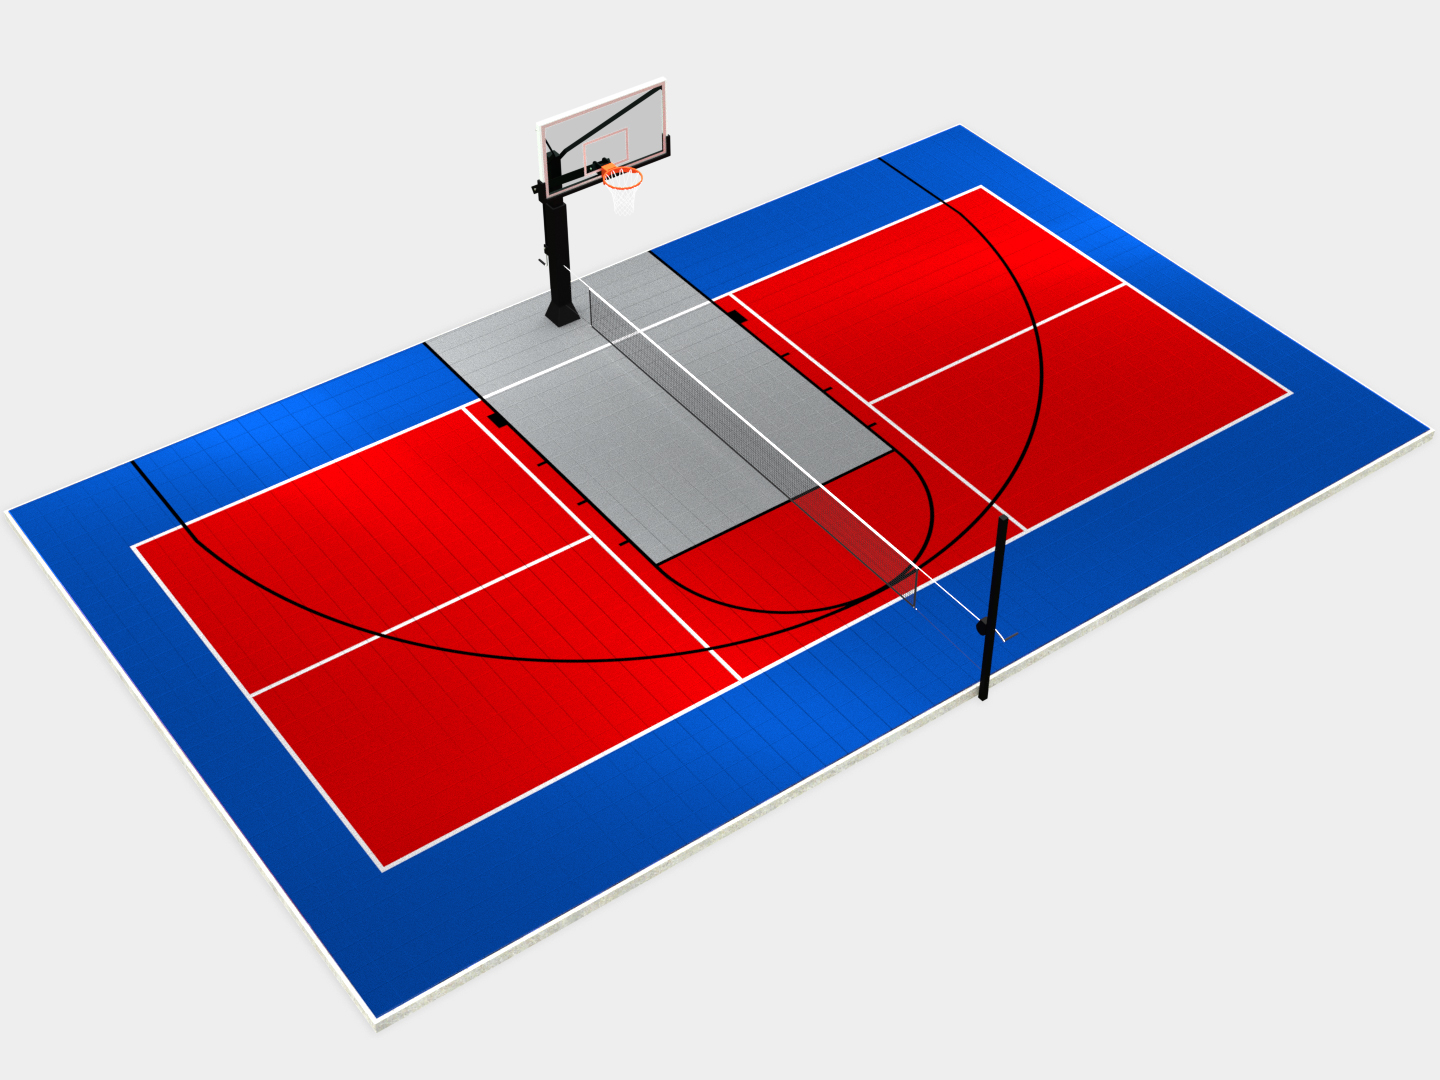 50' x 30' Half Multi-Court with Components